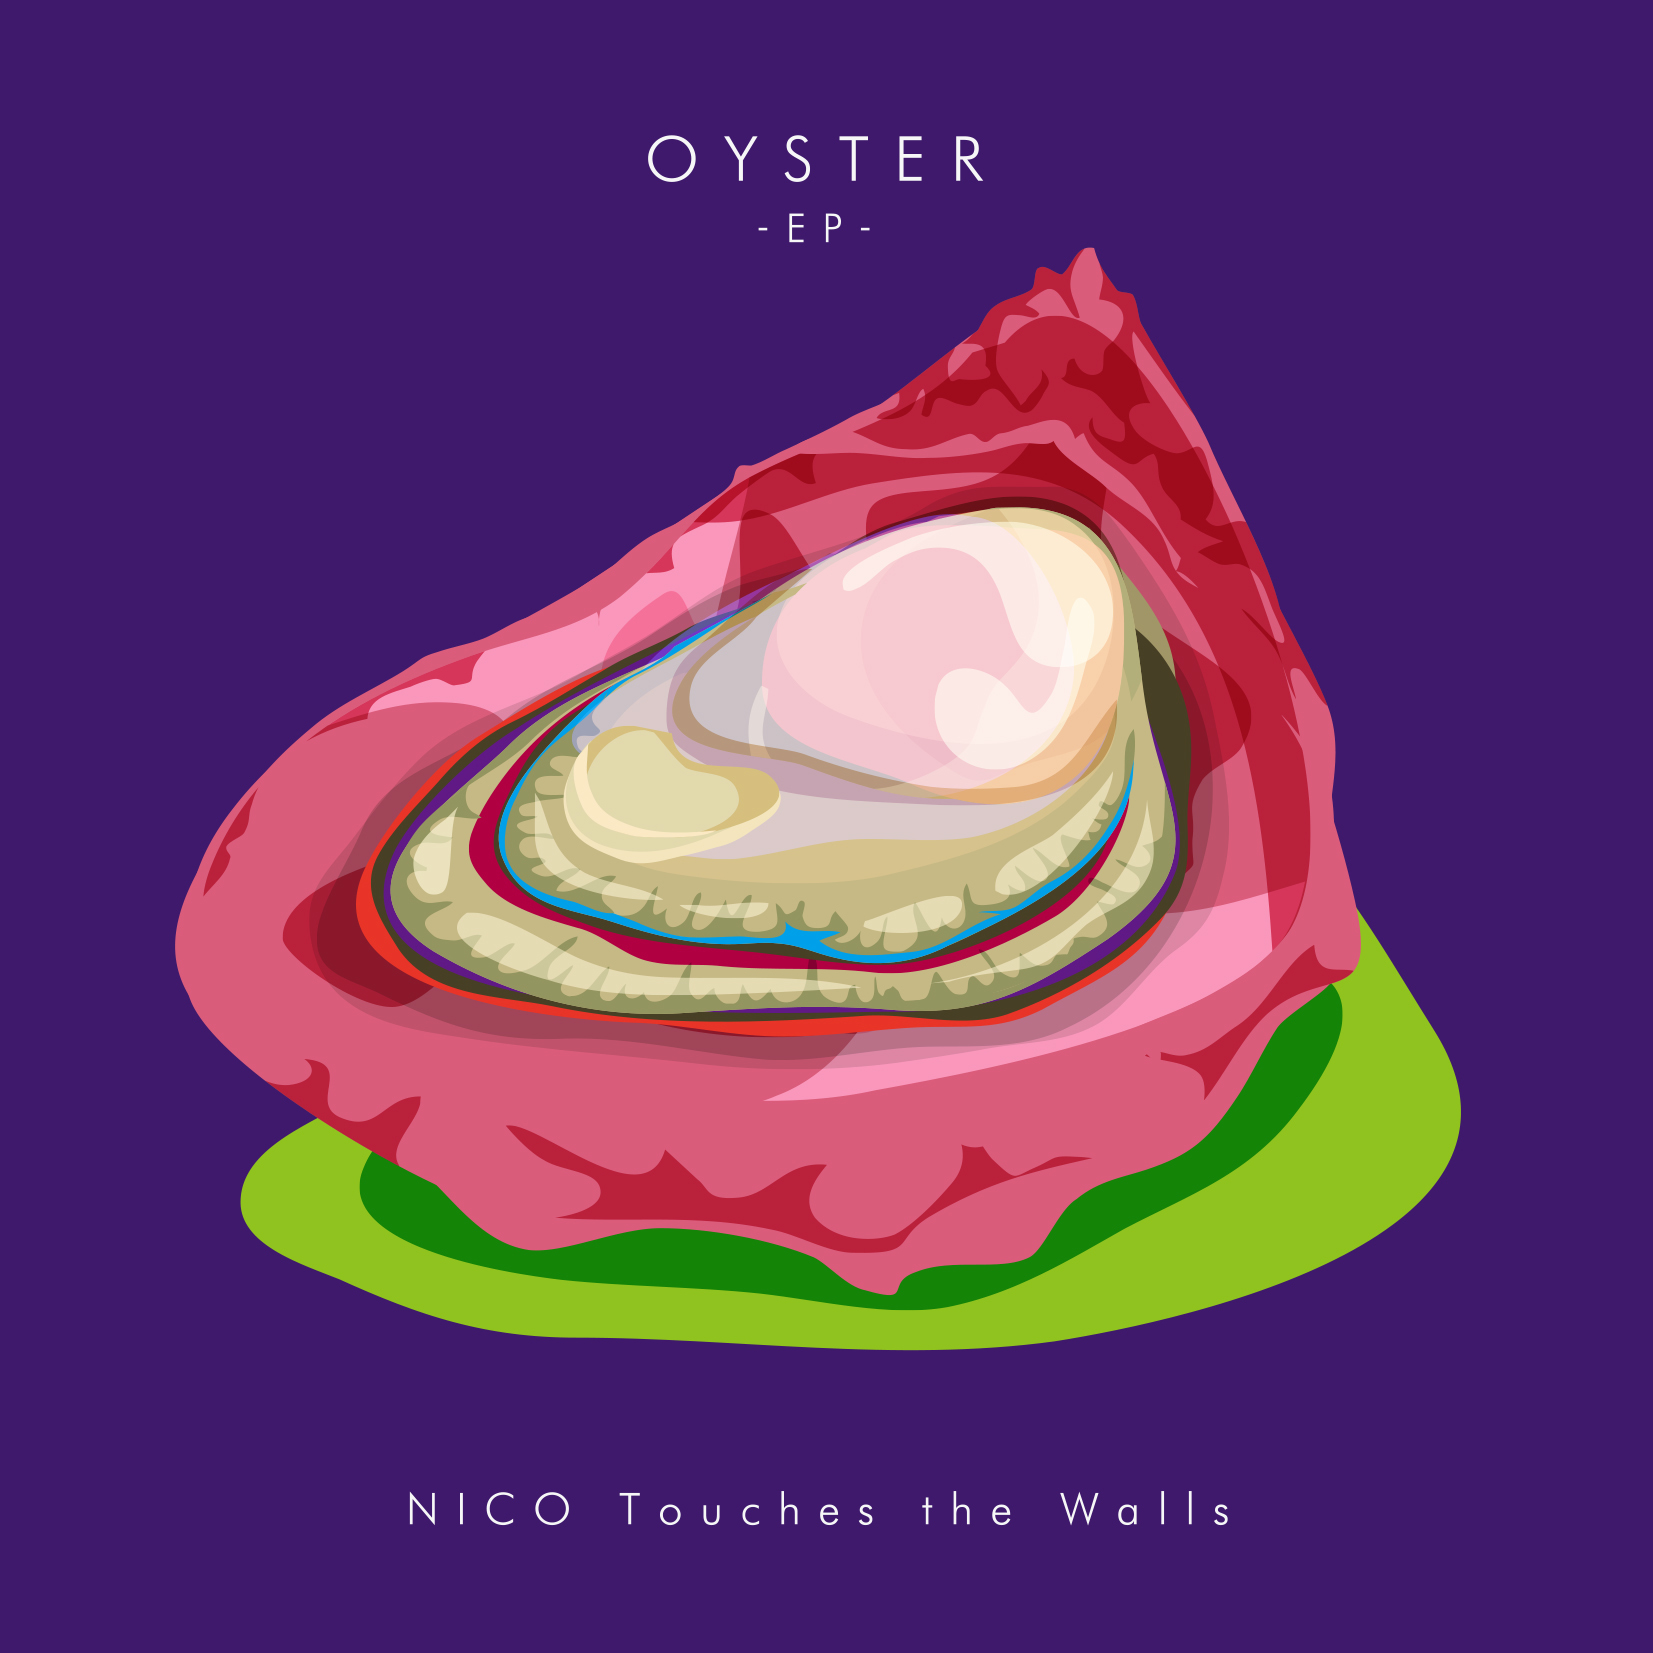 NICO Touches the Walls 『OYSTER -EP-』